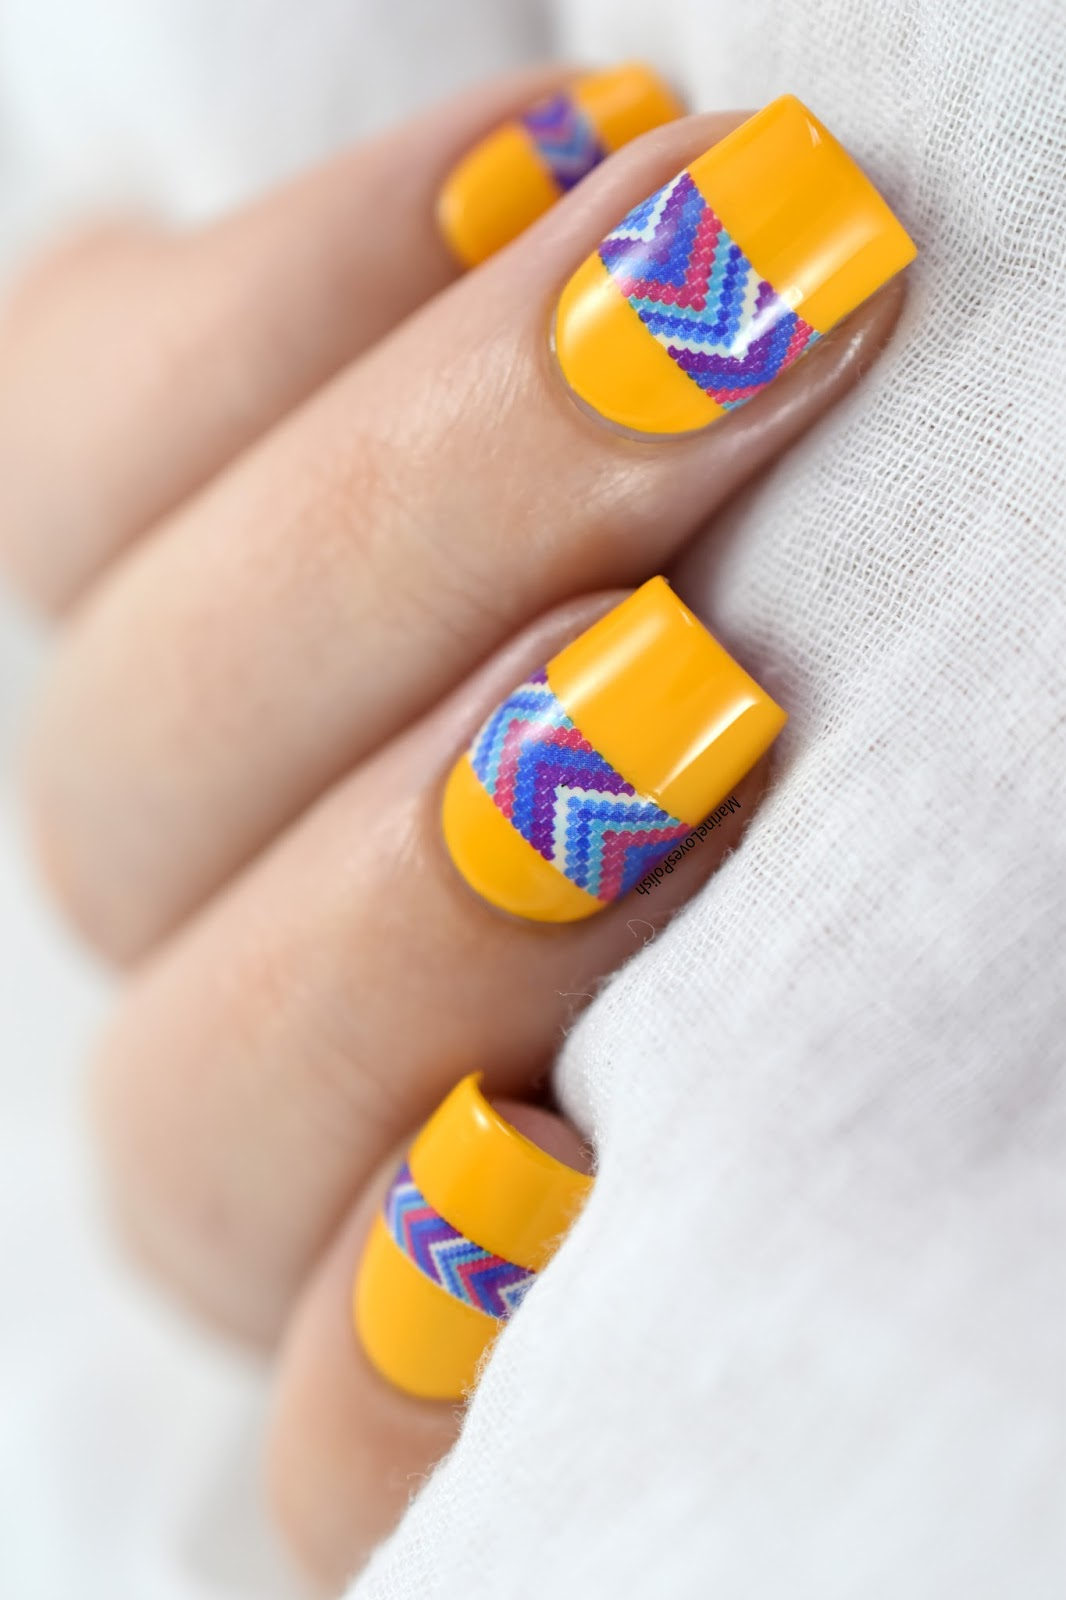 Un nail art azt que facile et rapide c 39 est possible marine loves polish and more blog - Nail art facile et rapide ...